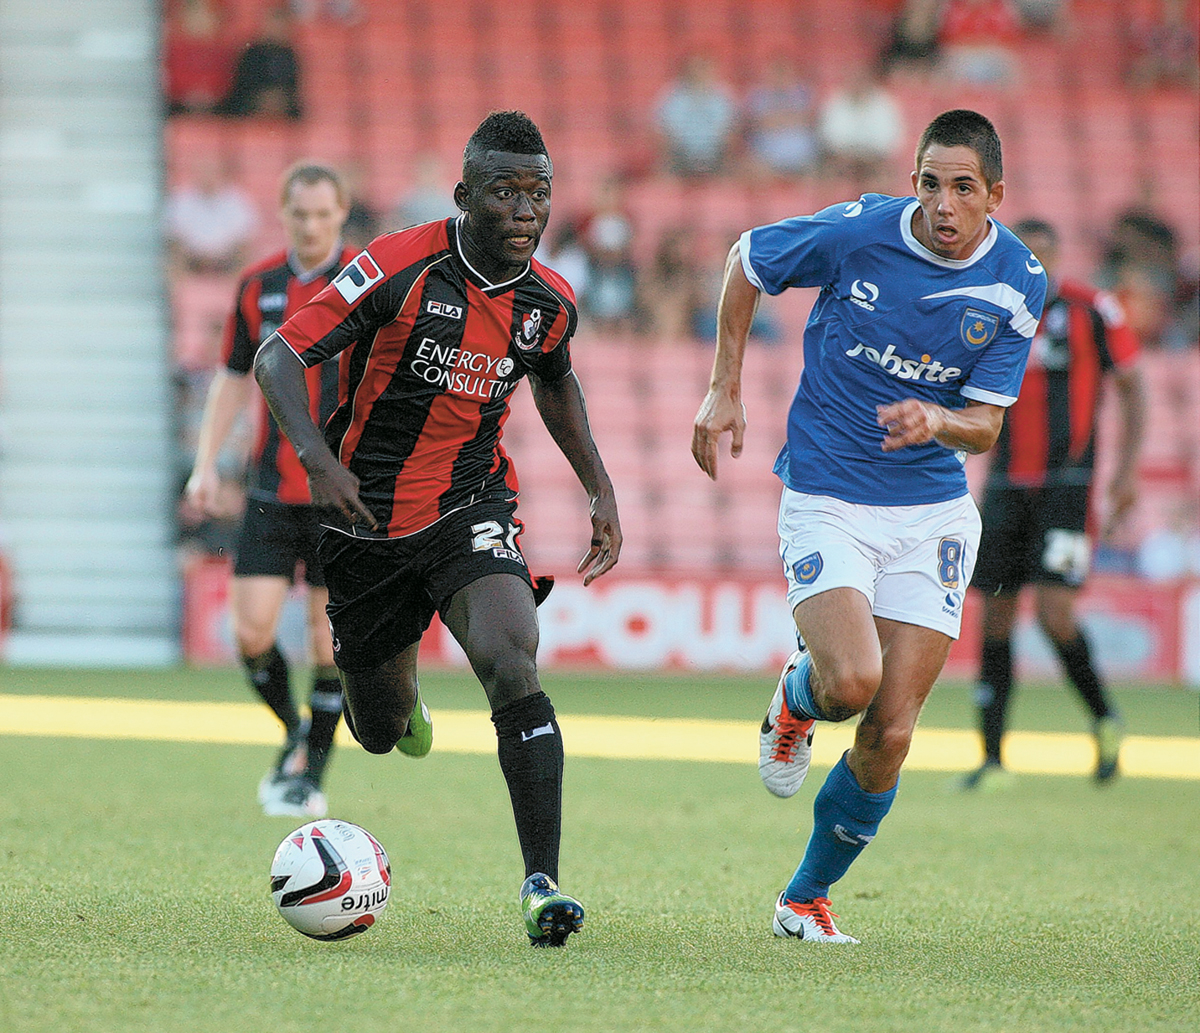 WINGER: Mohamed Coulibaly